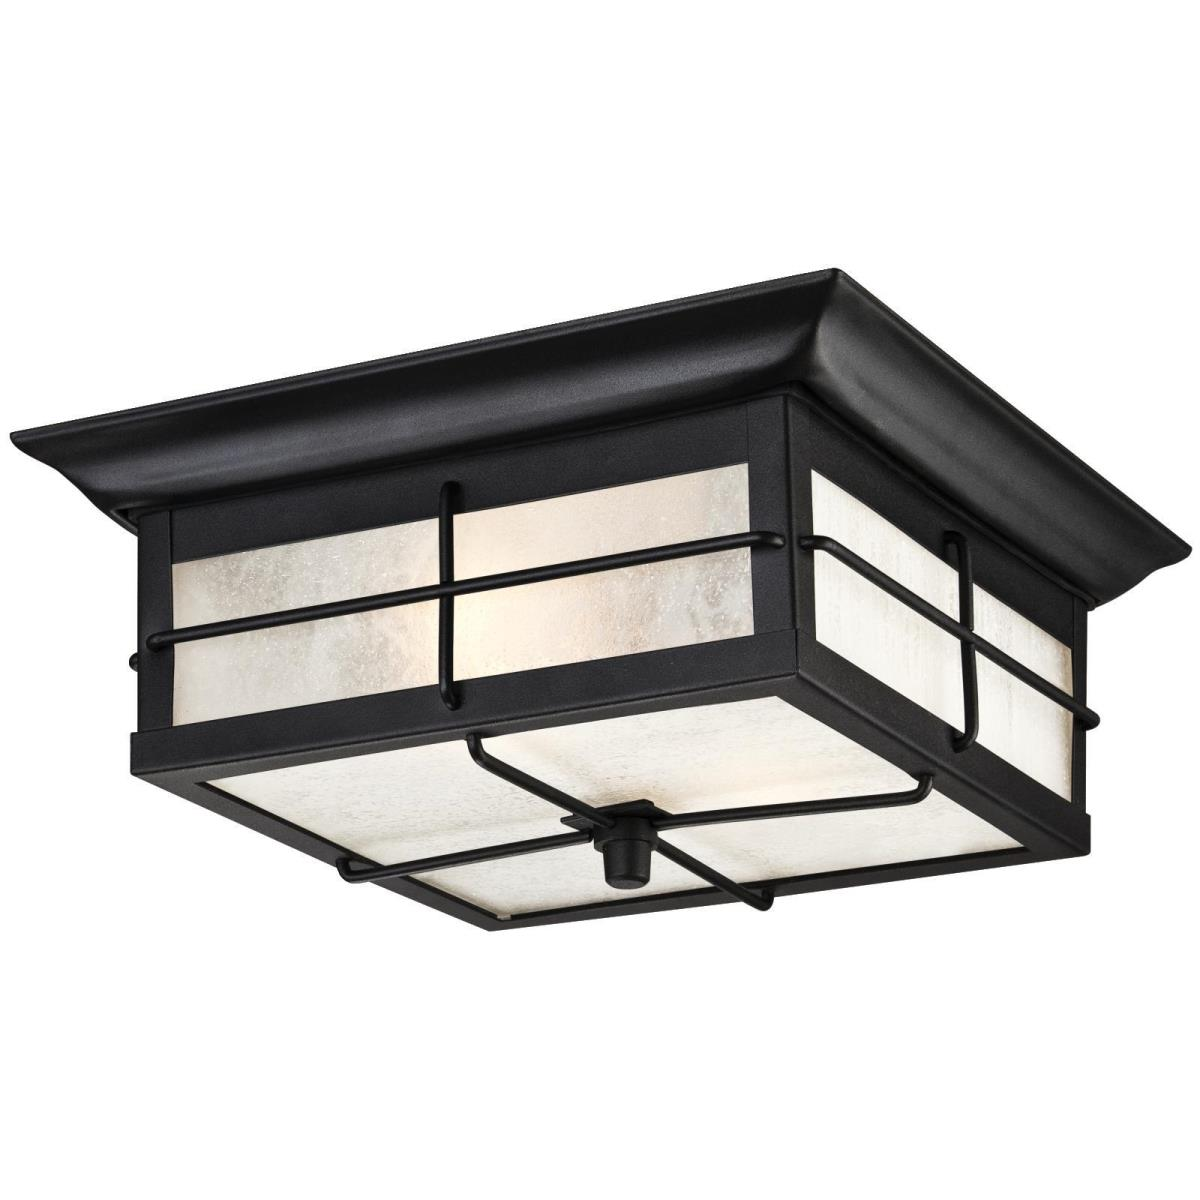 2 Light Flush Textured Black Finish with Frosted Seeded Glass